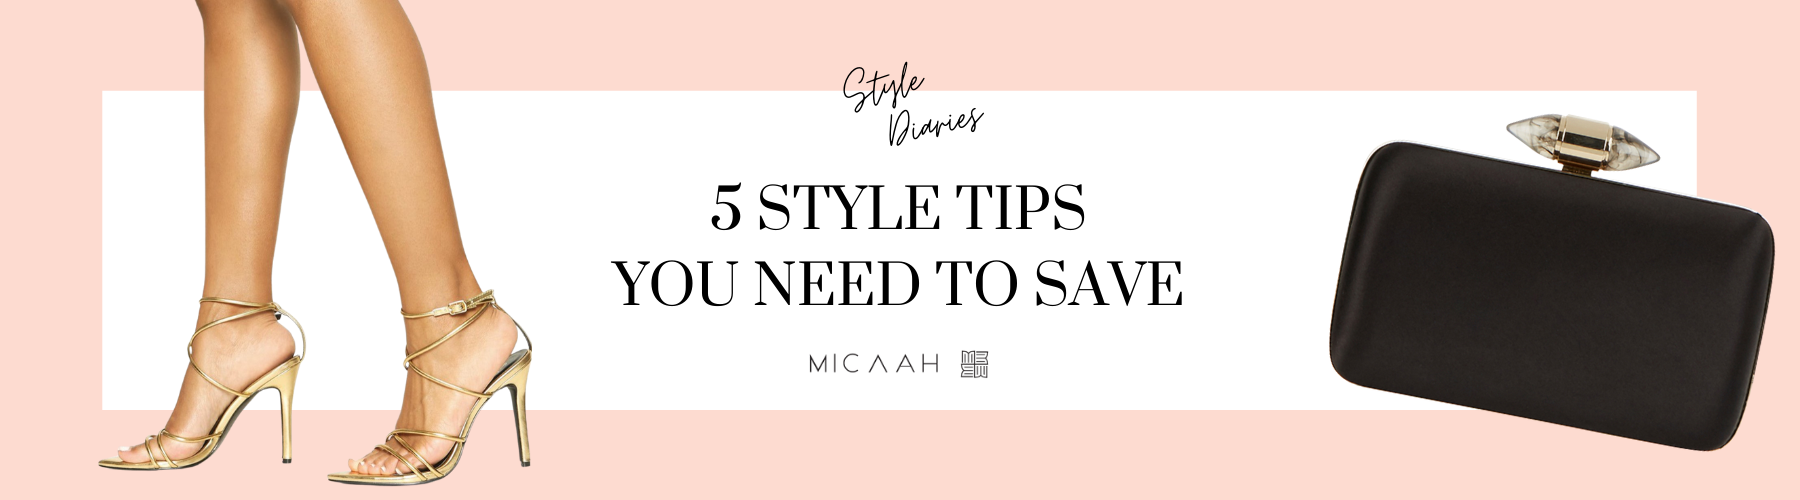 5 Style Tip you need to save